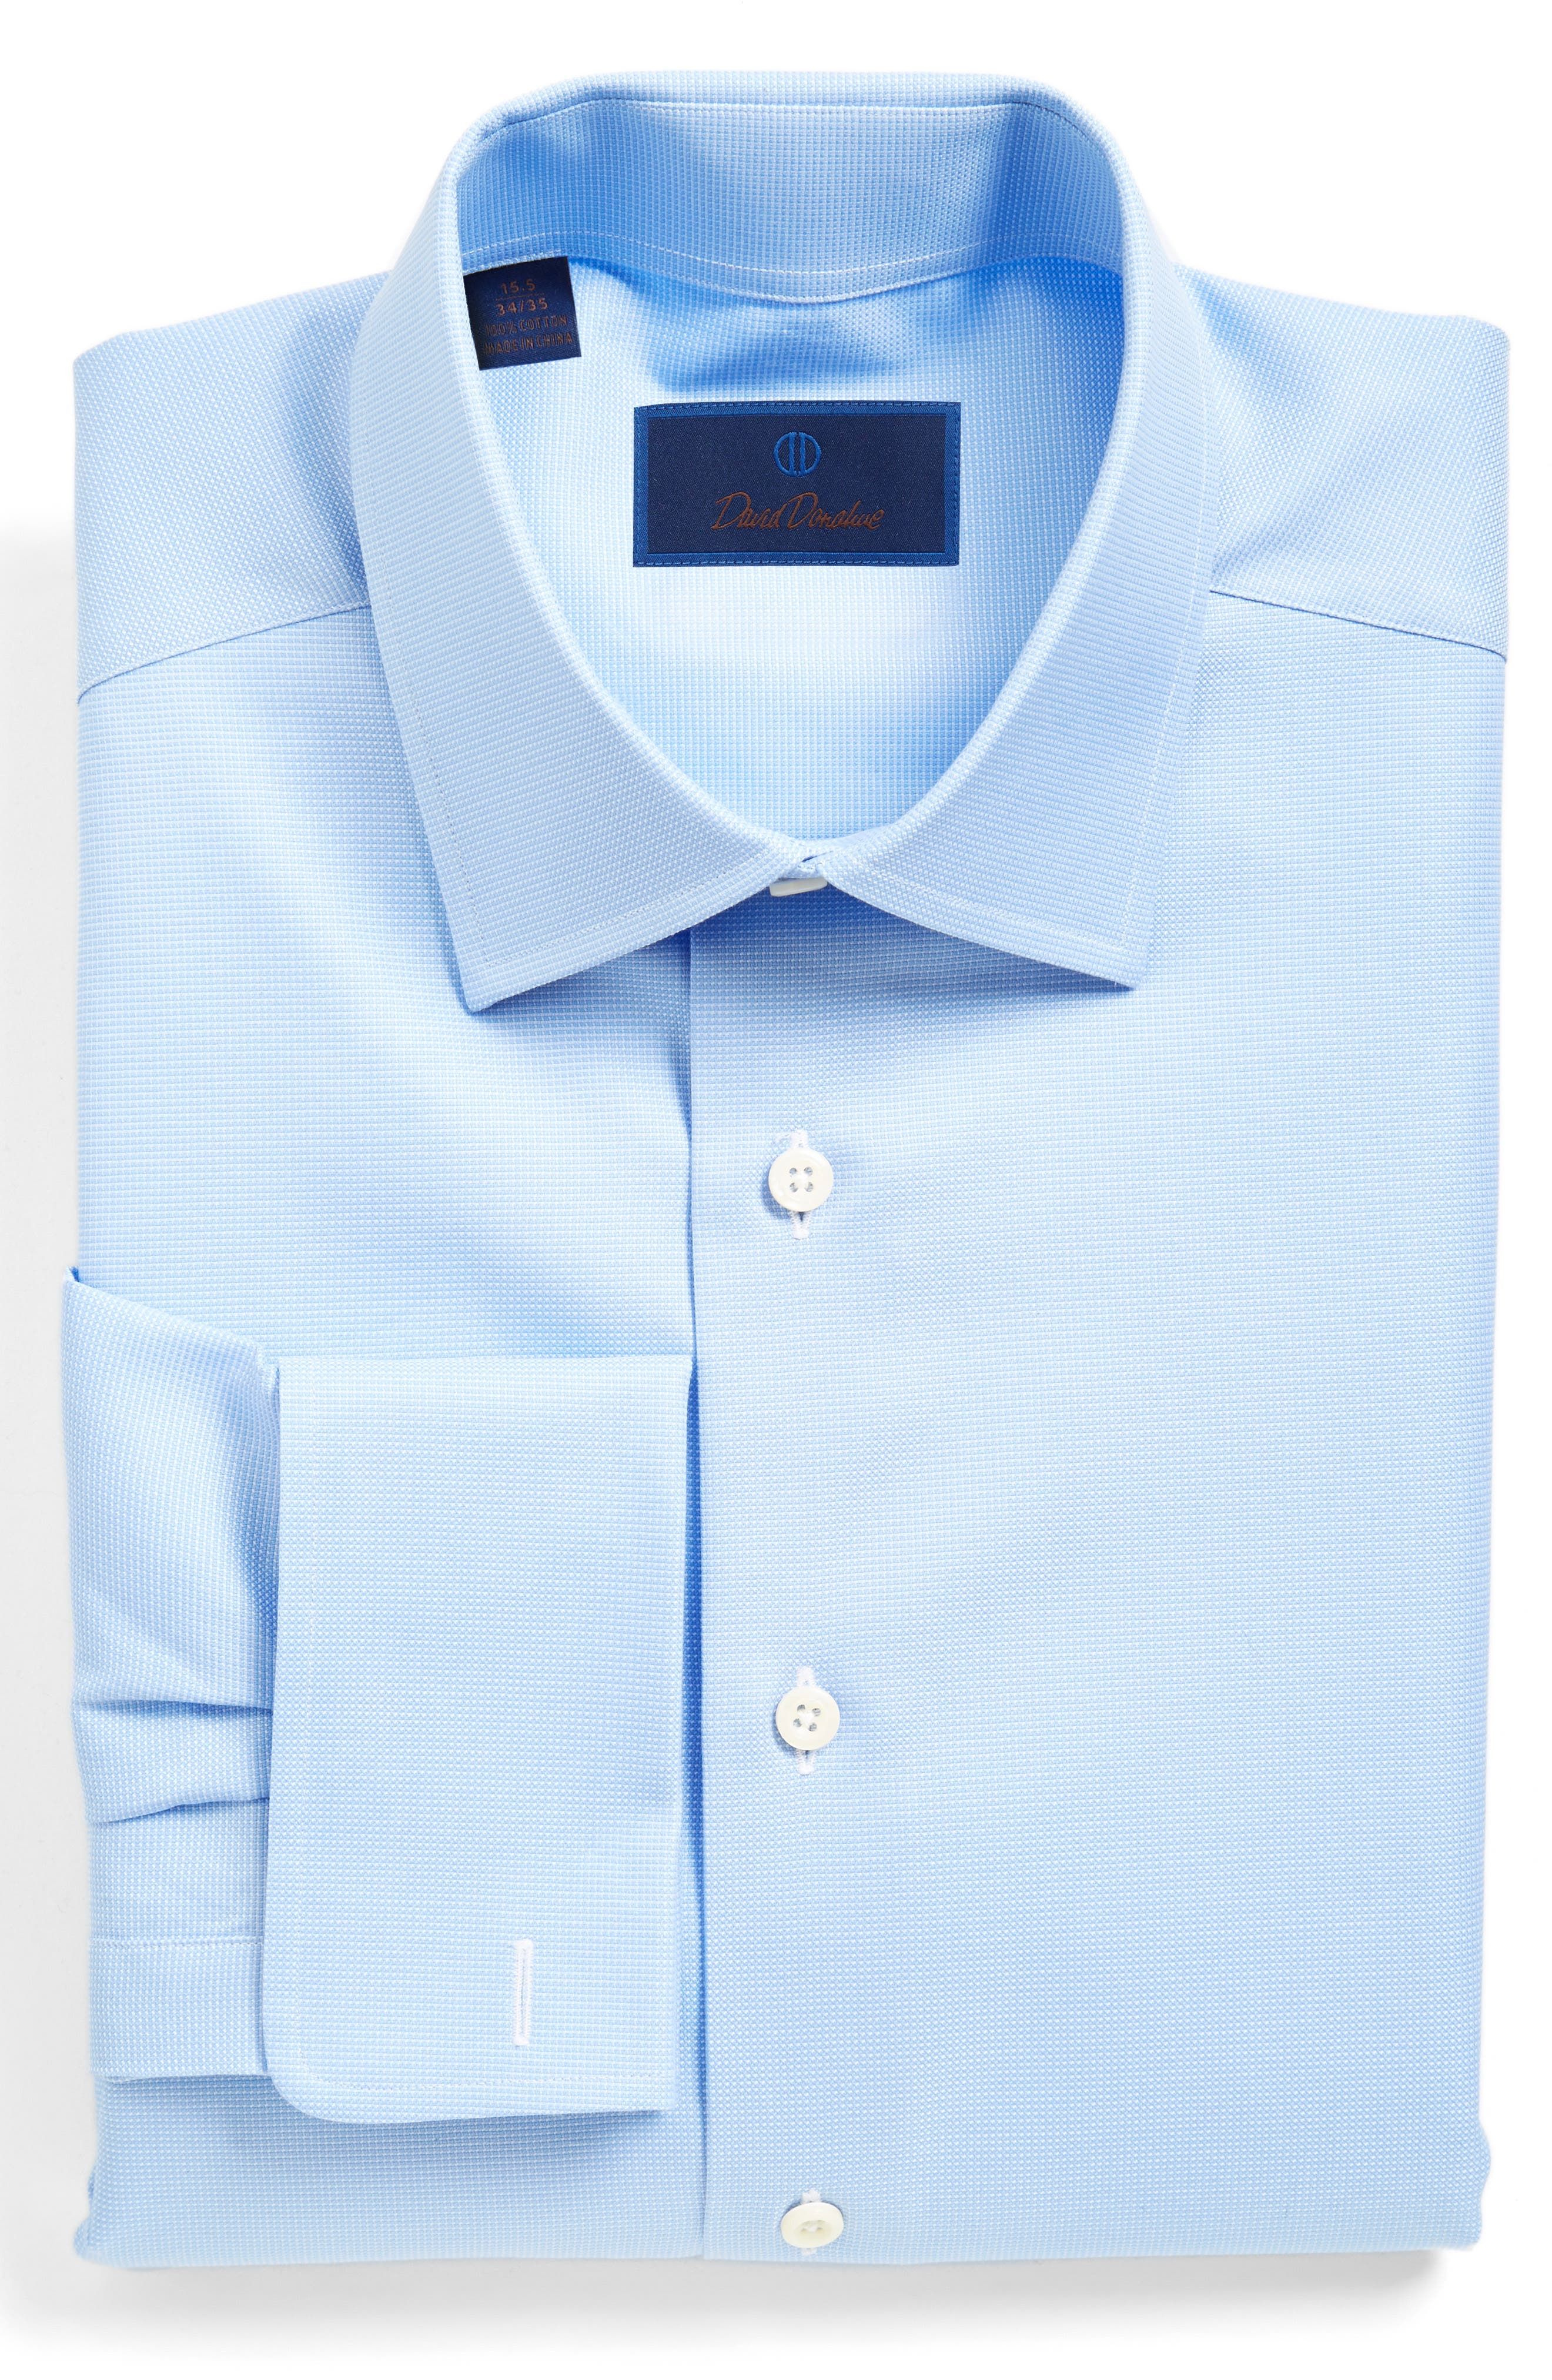 Alternate Image 1 Selected - David Donahue Regular Fit Dobby Check French Cuff Dress Shirt